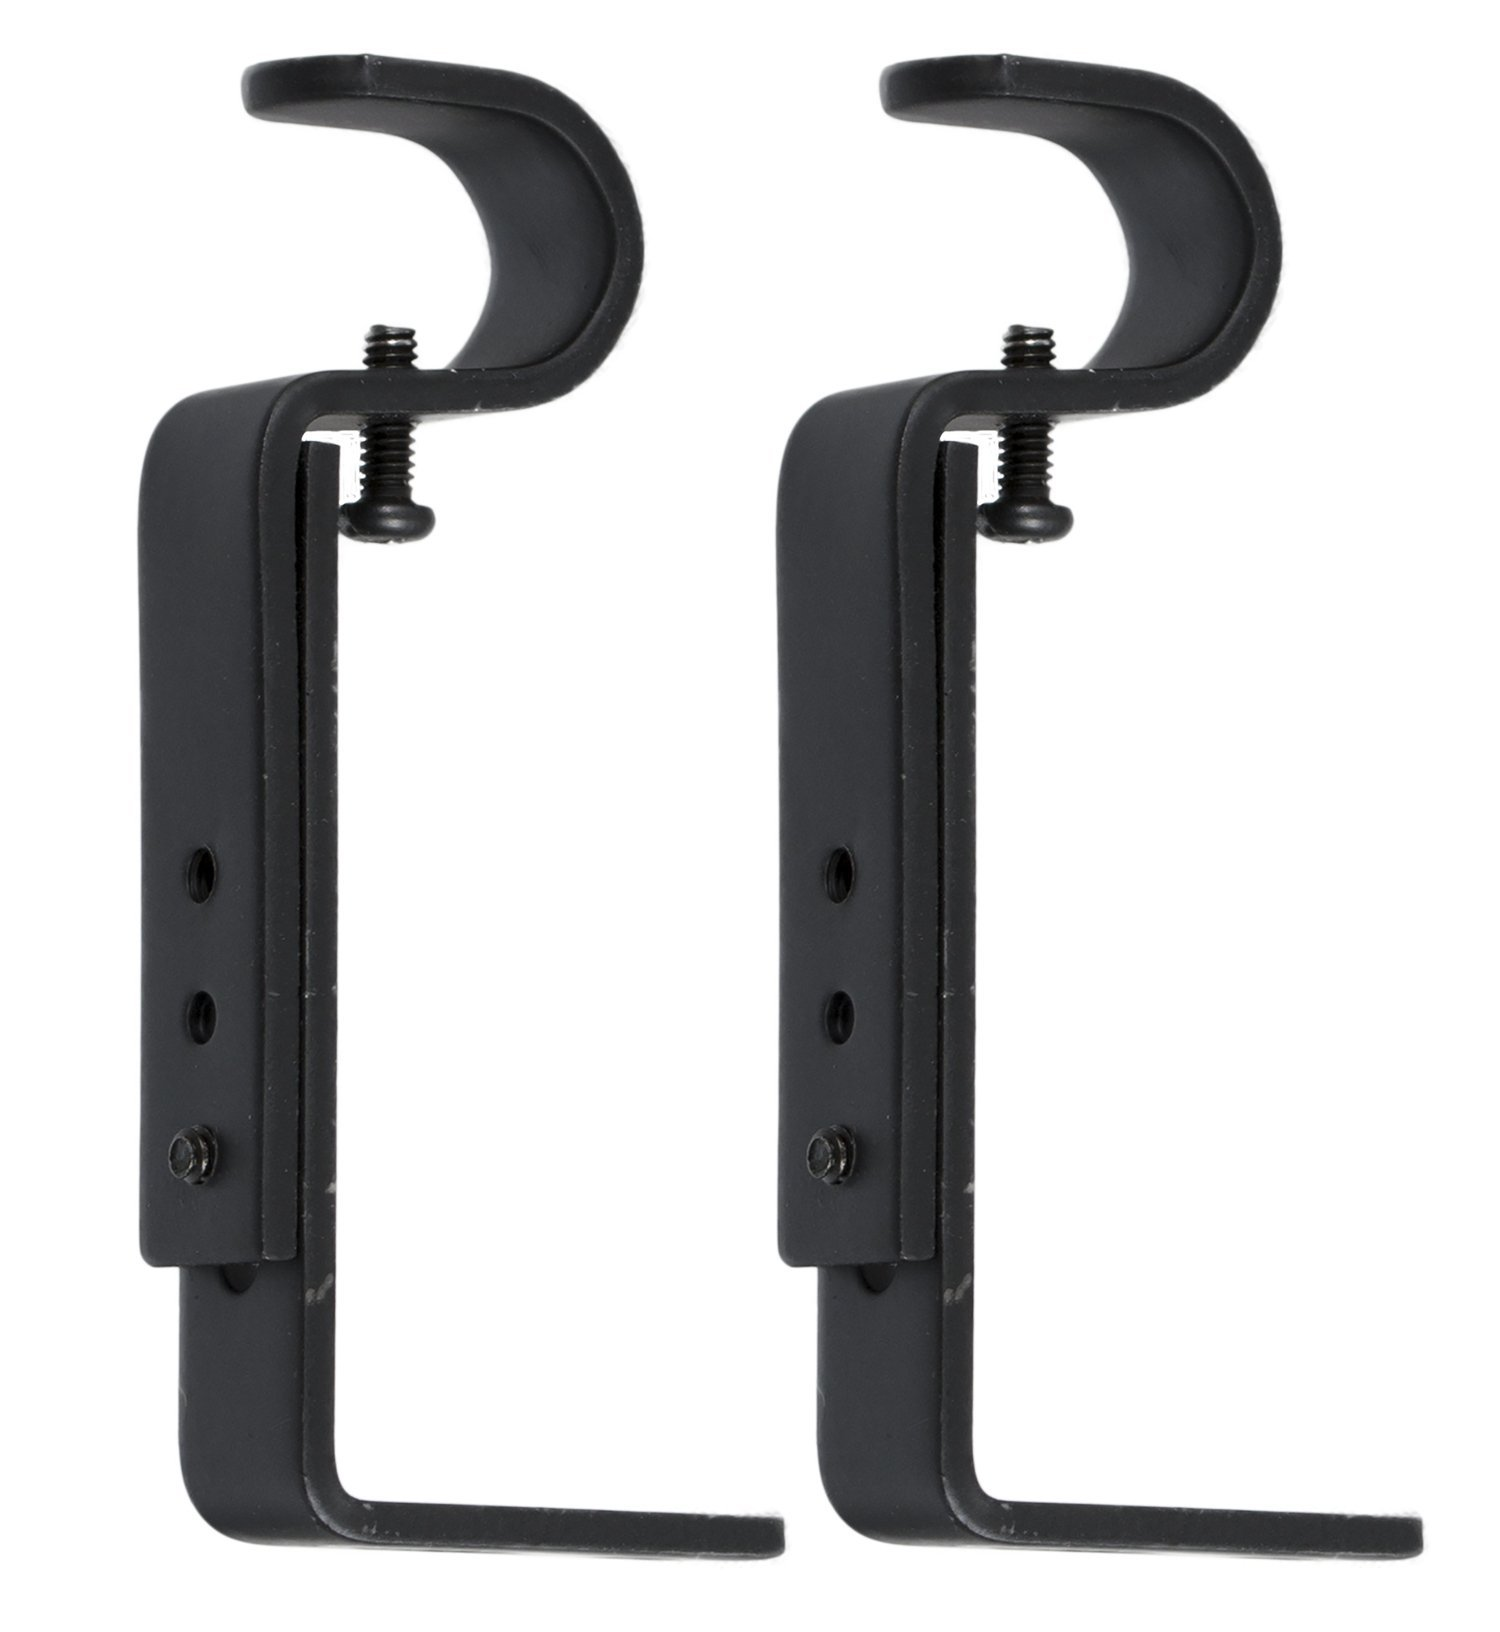 Urbanest Adjustable Bracket for 1/2-inch and 5/8-inch Curtain Drapery Rod, 2 pieces, Black